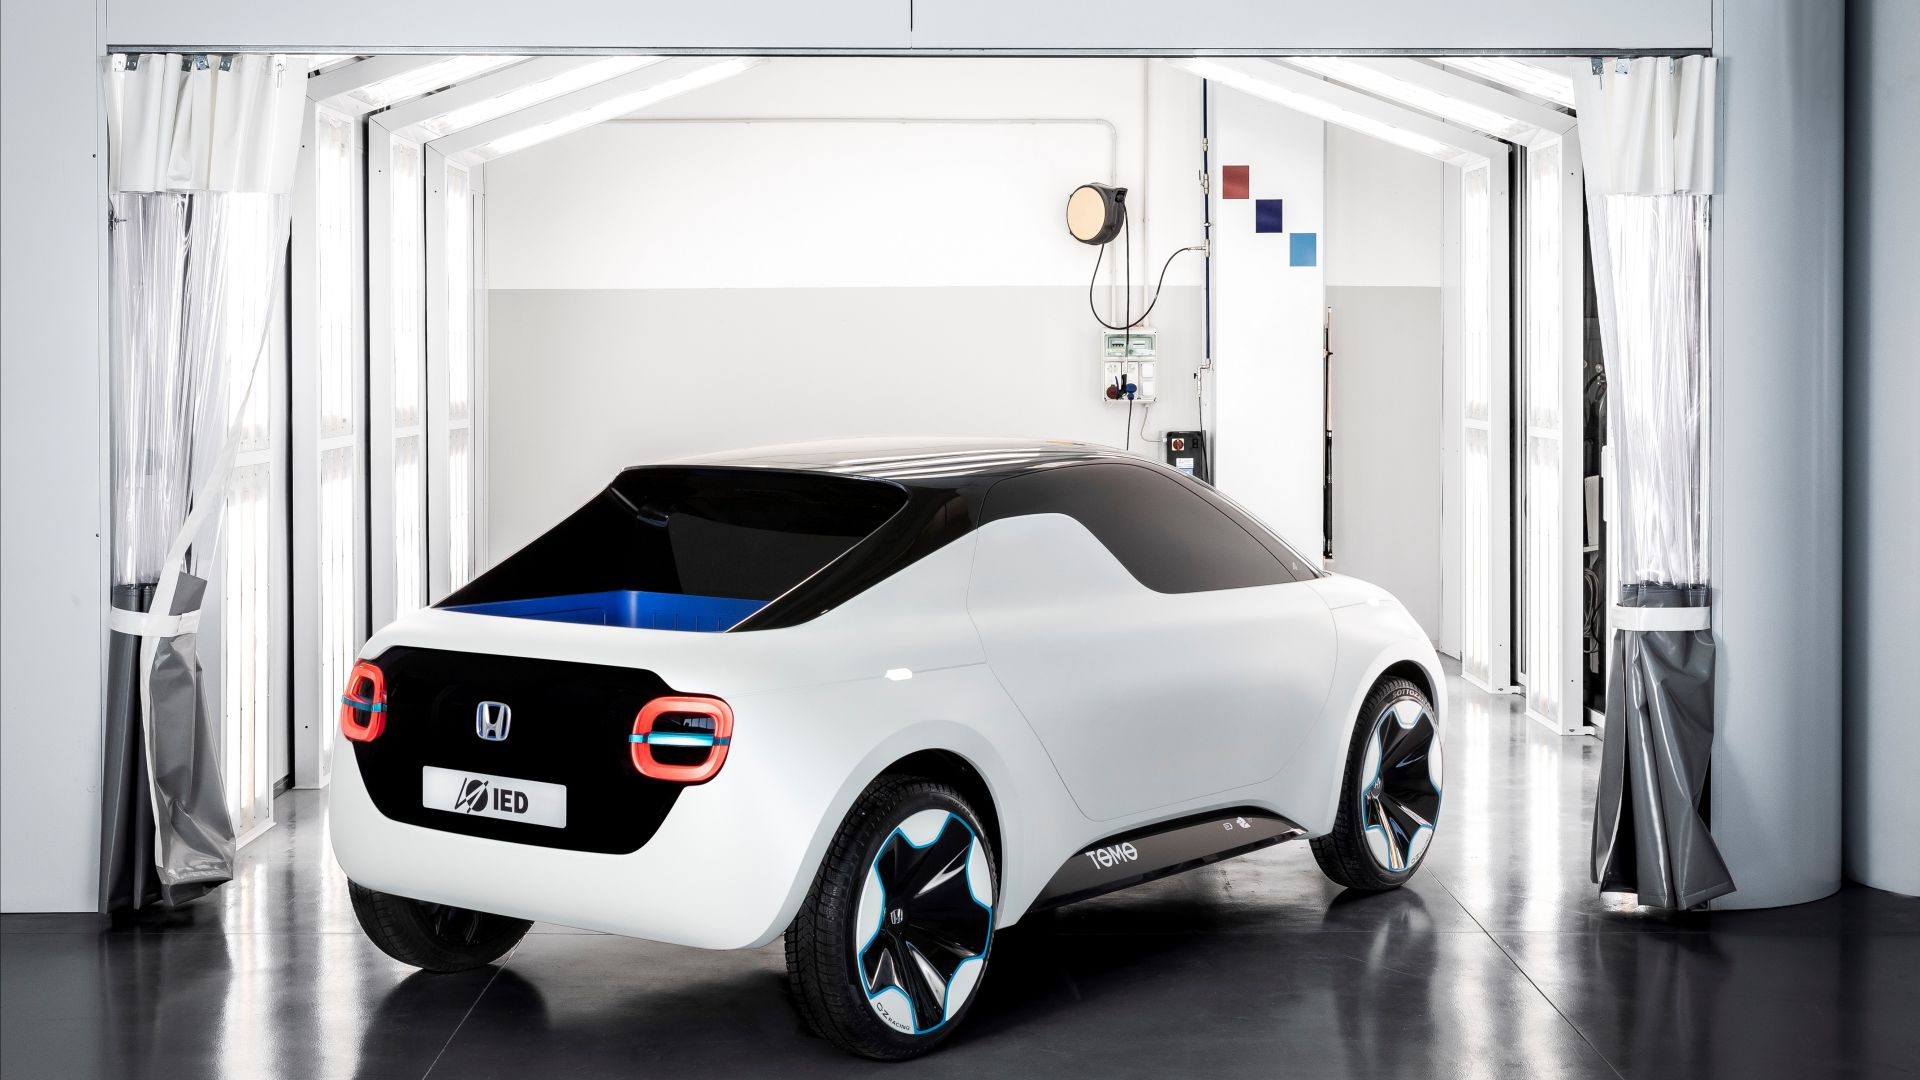 Honda Tomo by IED, electric cars, Geneva Motor Show 2019, 5K (horizontal)